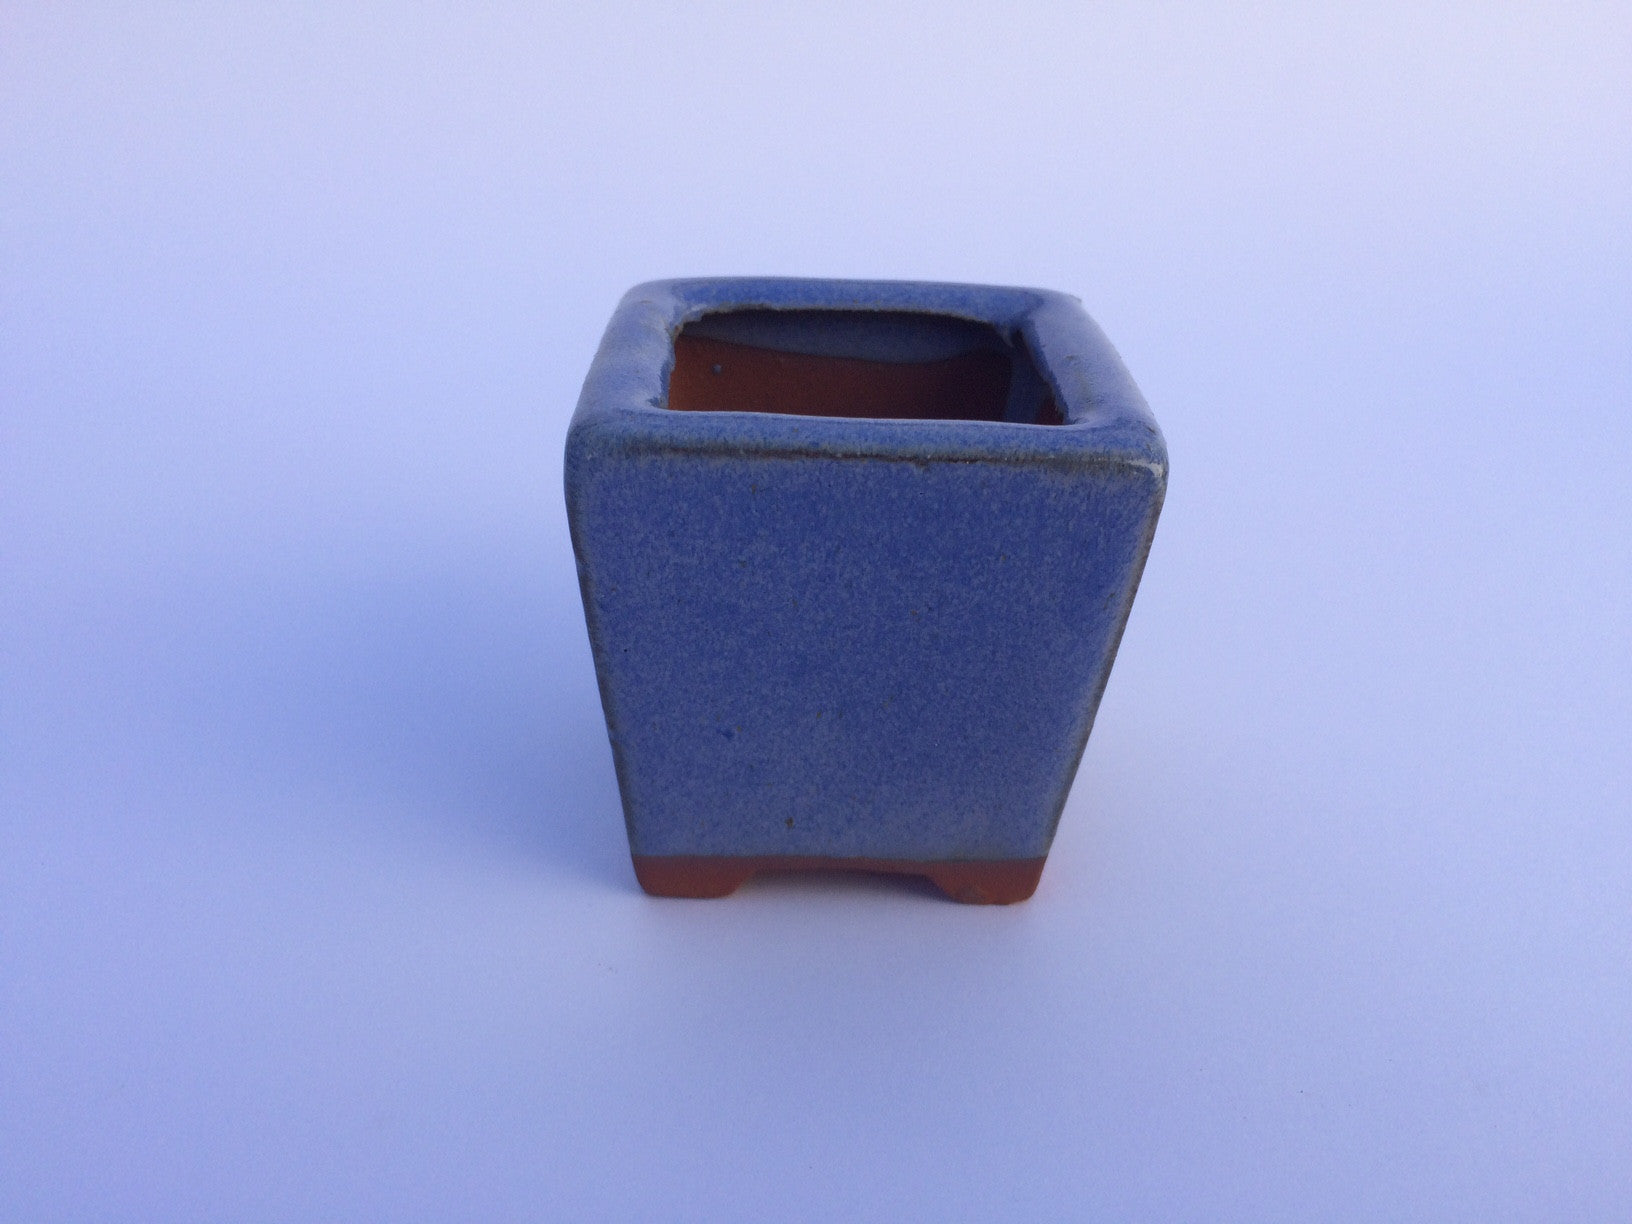 5.5cm x 5.5cm x 5cm Glazed Bonsai Container - Lavender